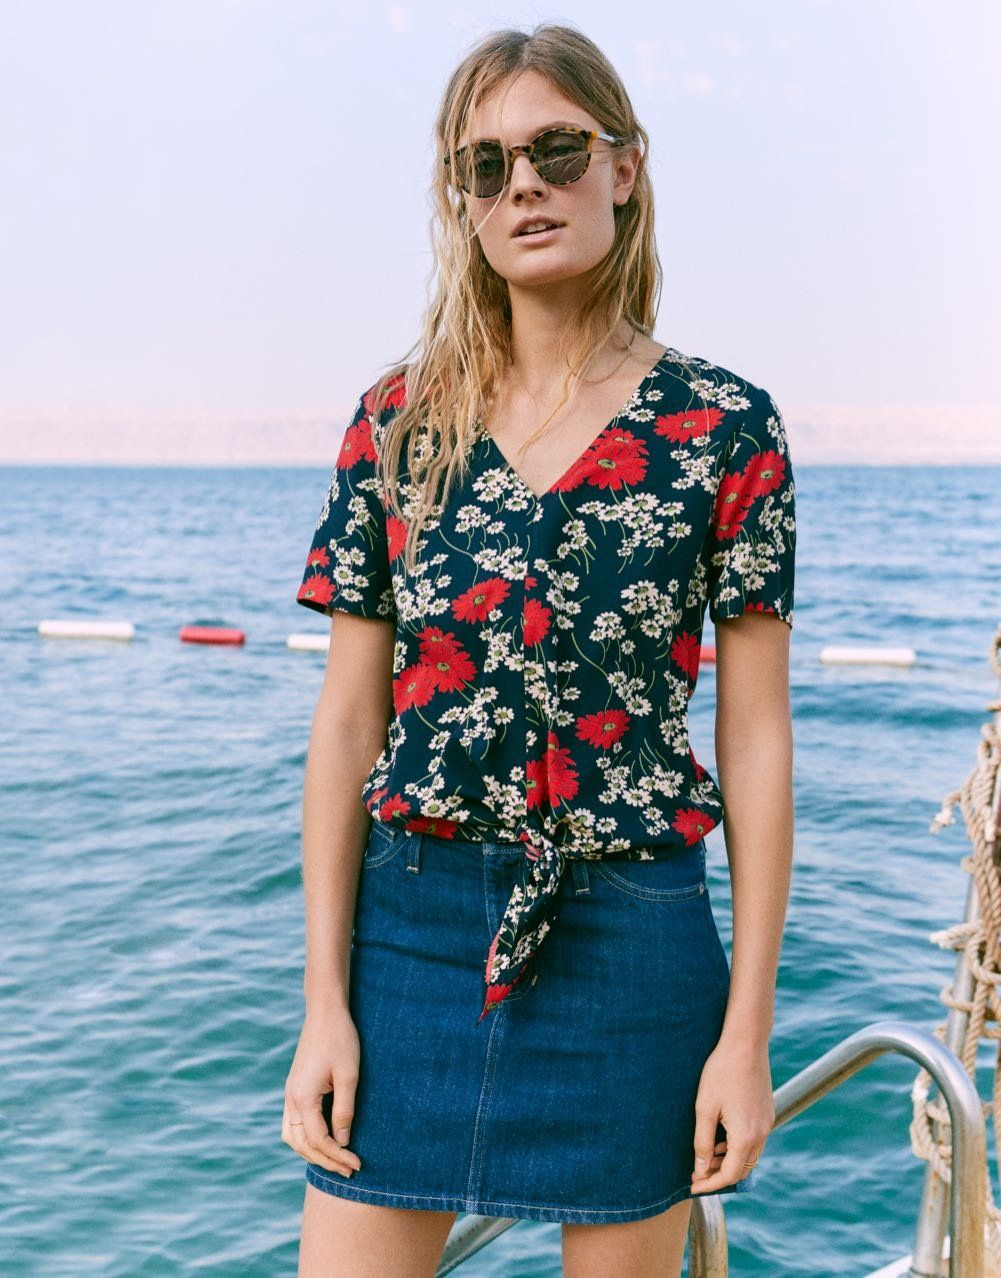 946fc8271d06c madewell novel tie-front top worn with rigid denim postage stamp skirt +  layton sunglasses.